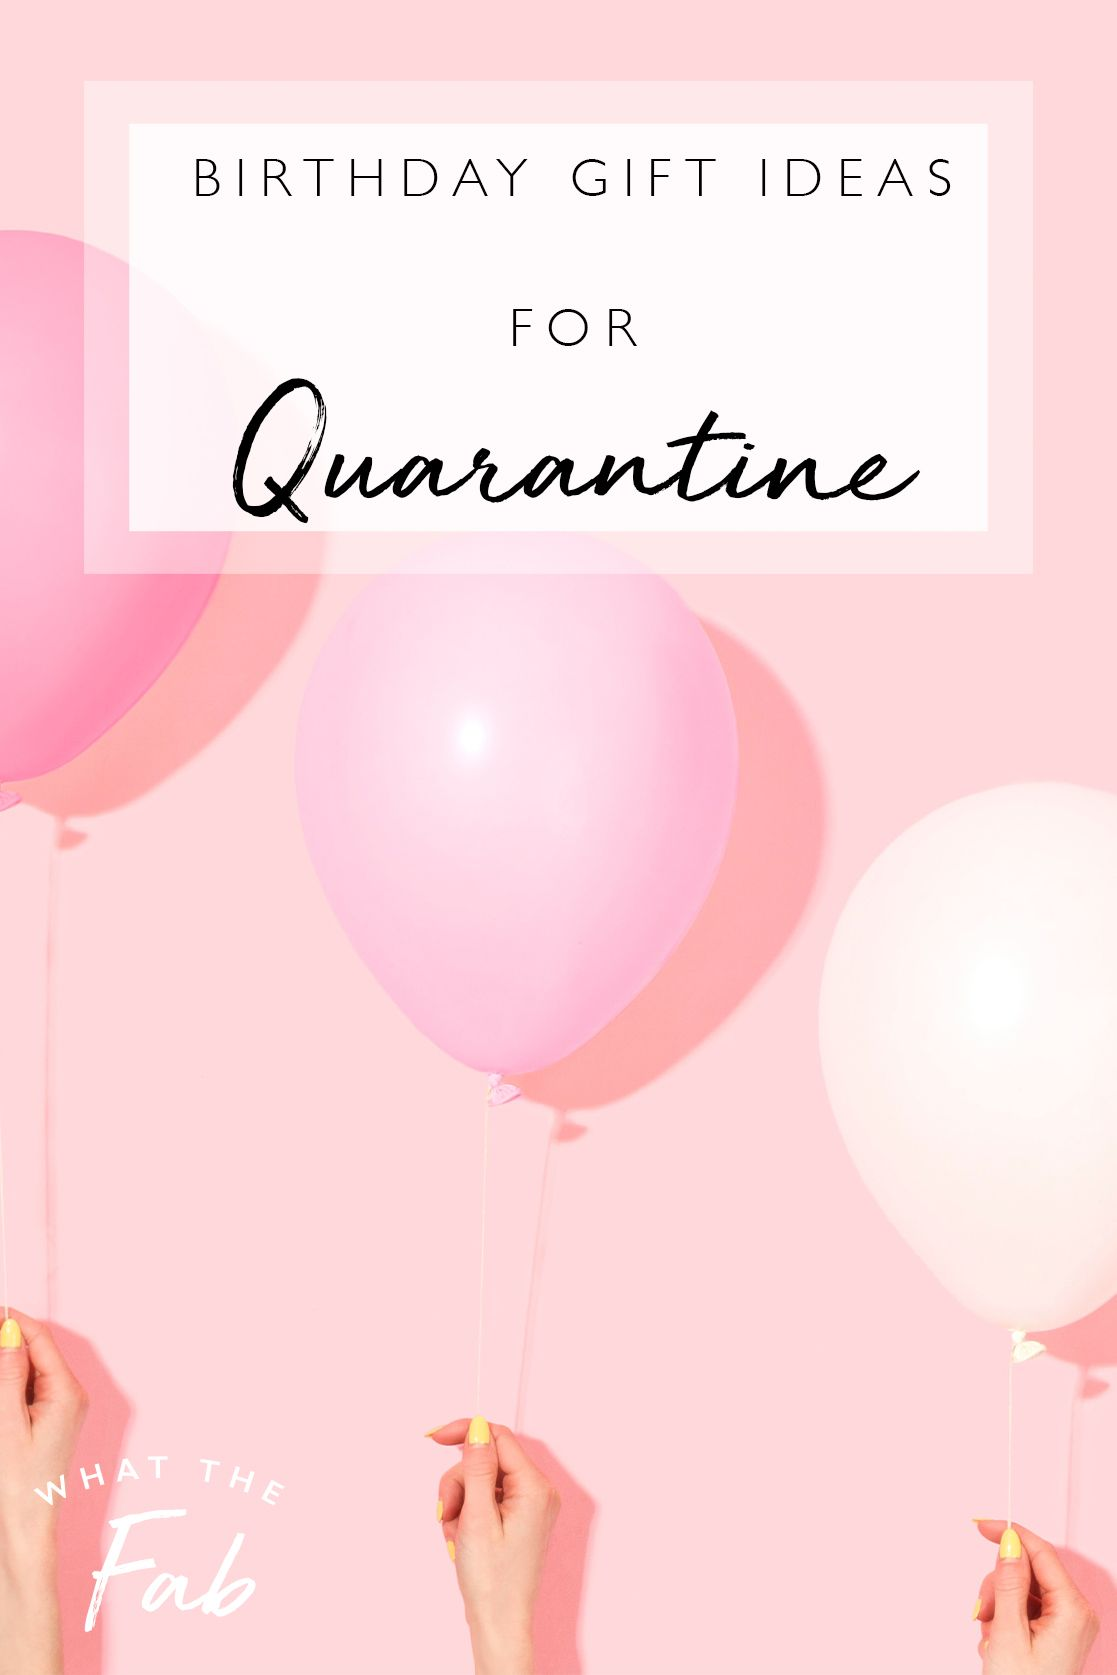 Do You Know Someone Who Has A Birthday During Quarantine Having A Birthday In Quarantine Sucks But You Can Make It Better By Getting Someone Any Of These Gift